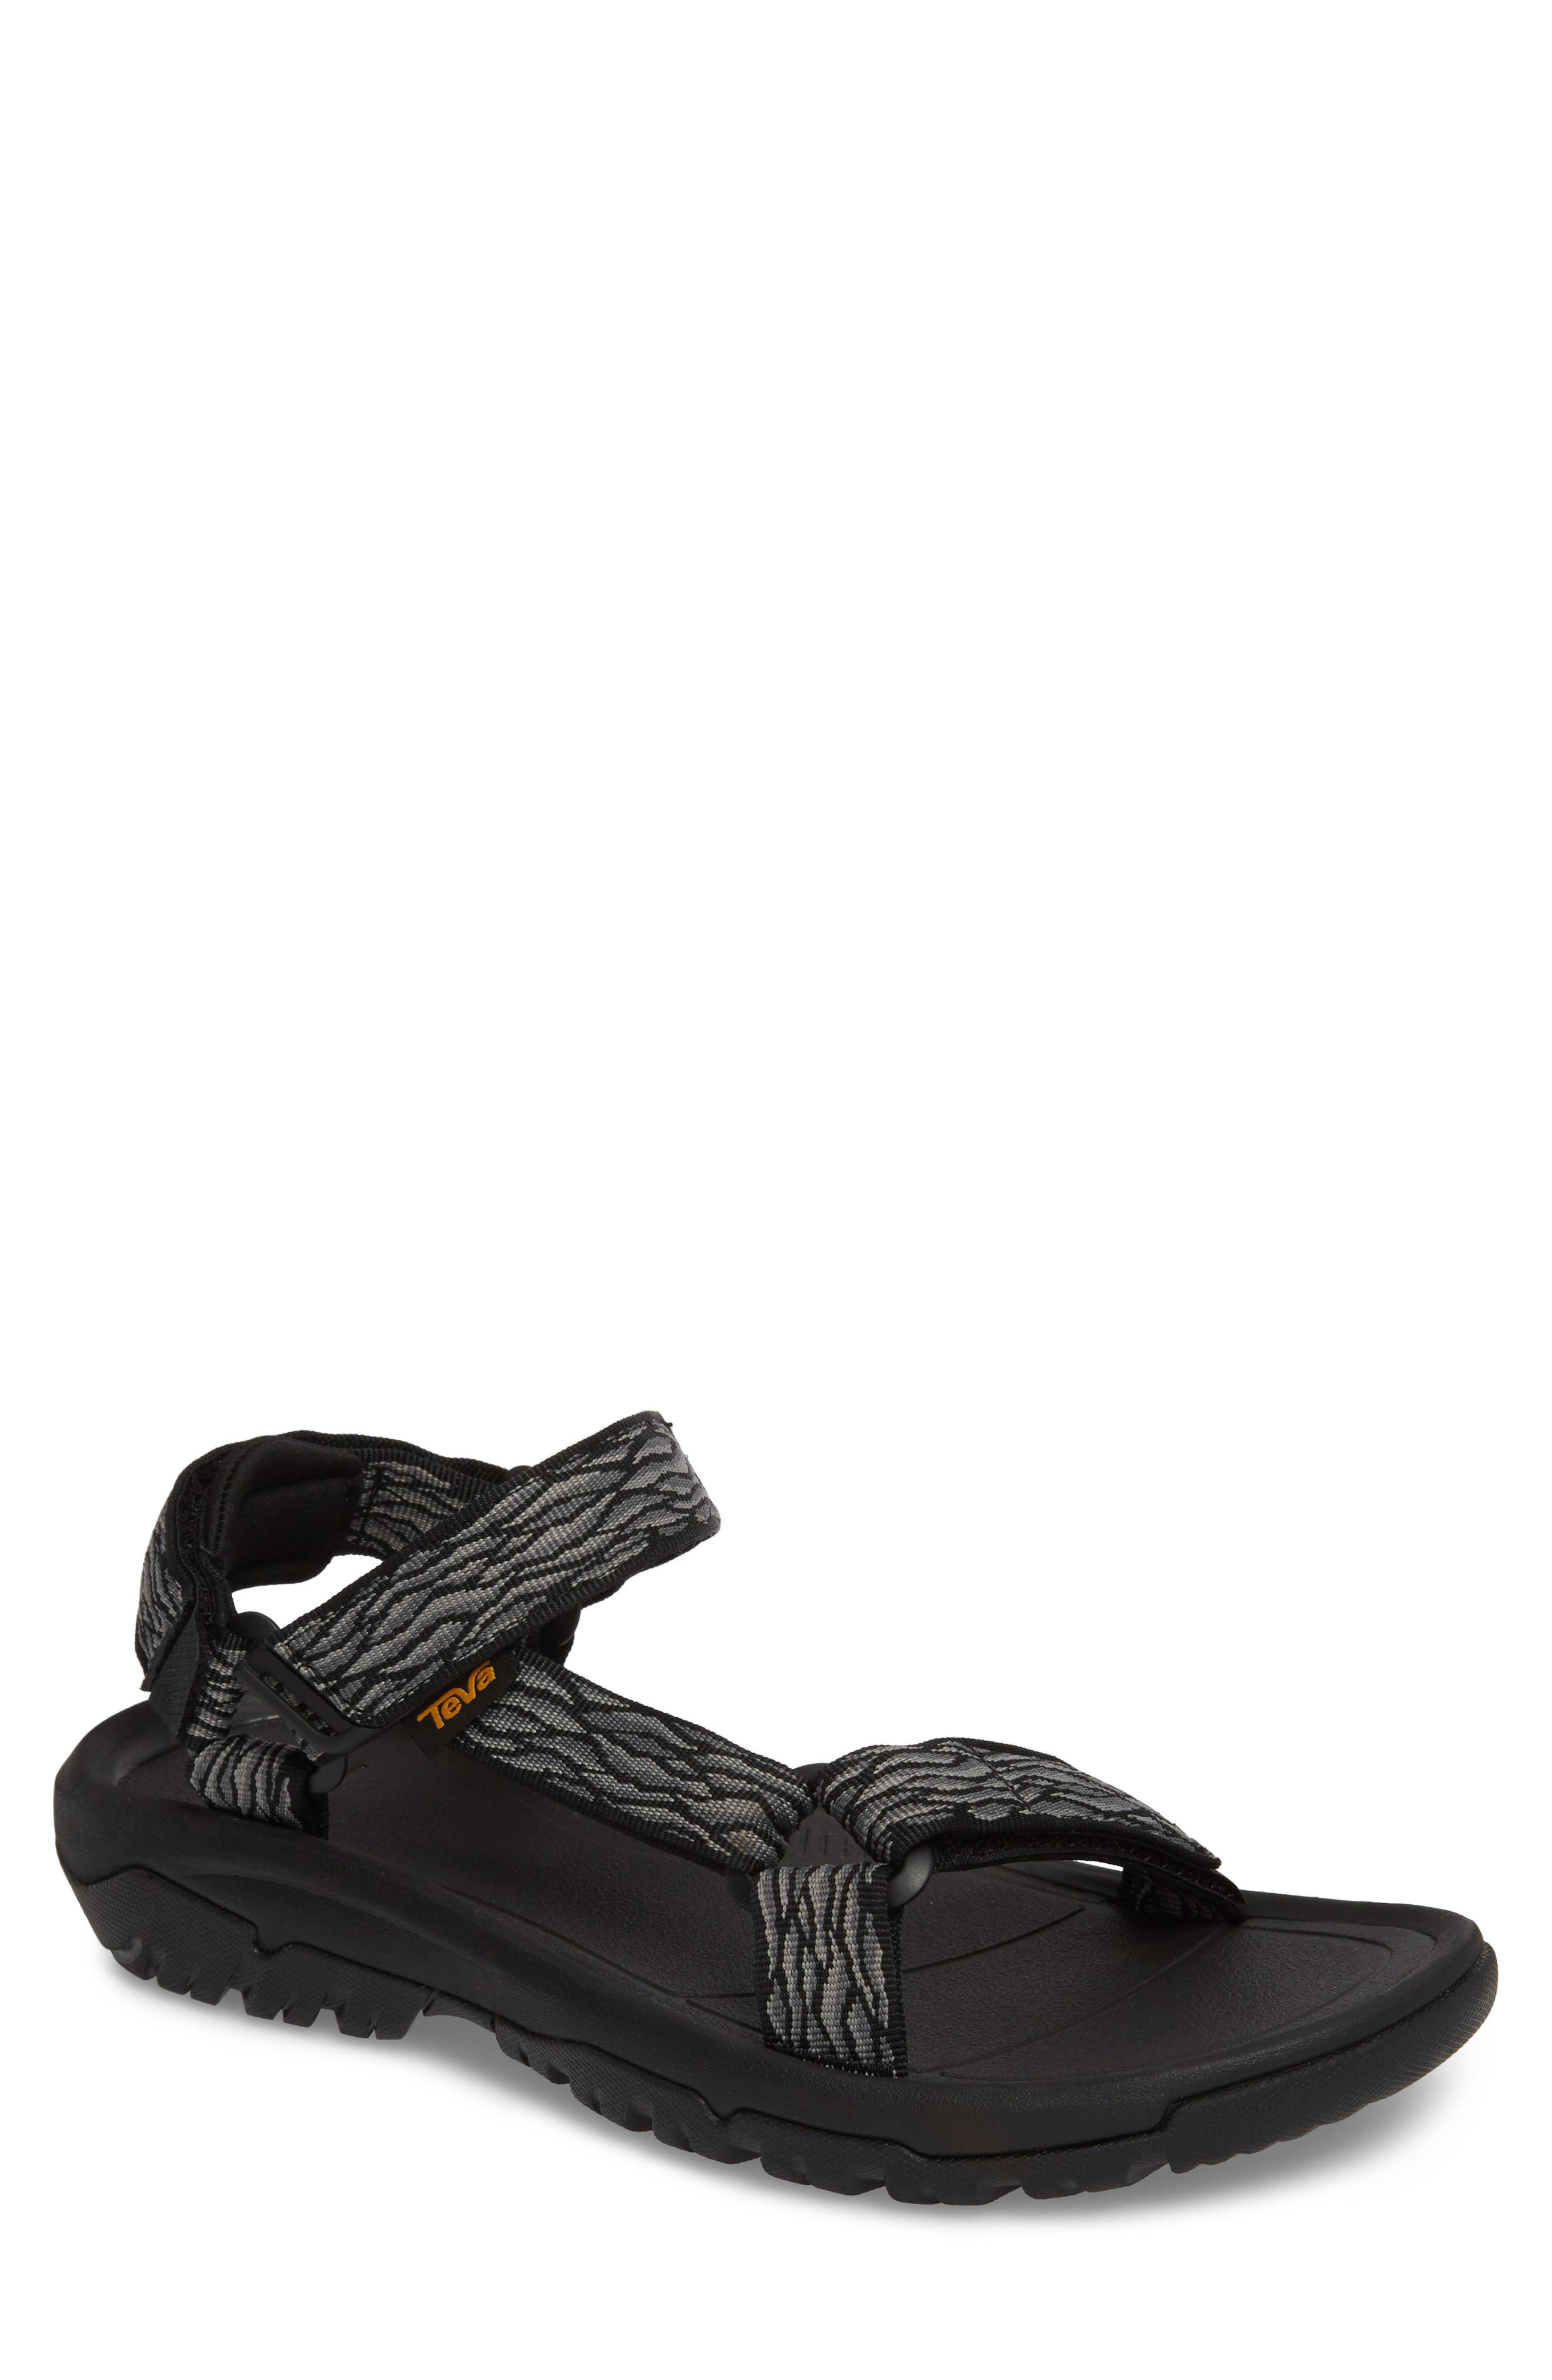 Hurricane XLT 2 Sandal,                         Main,                         color, BLACK/ GREY NYLON